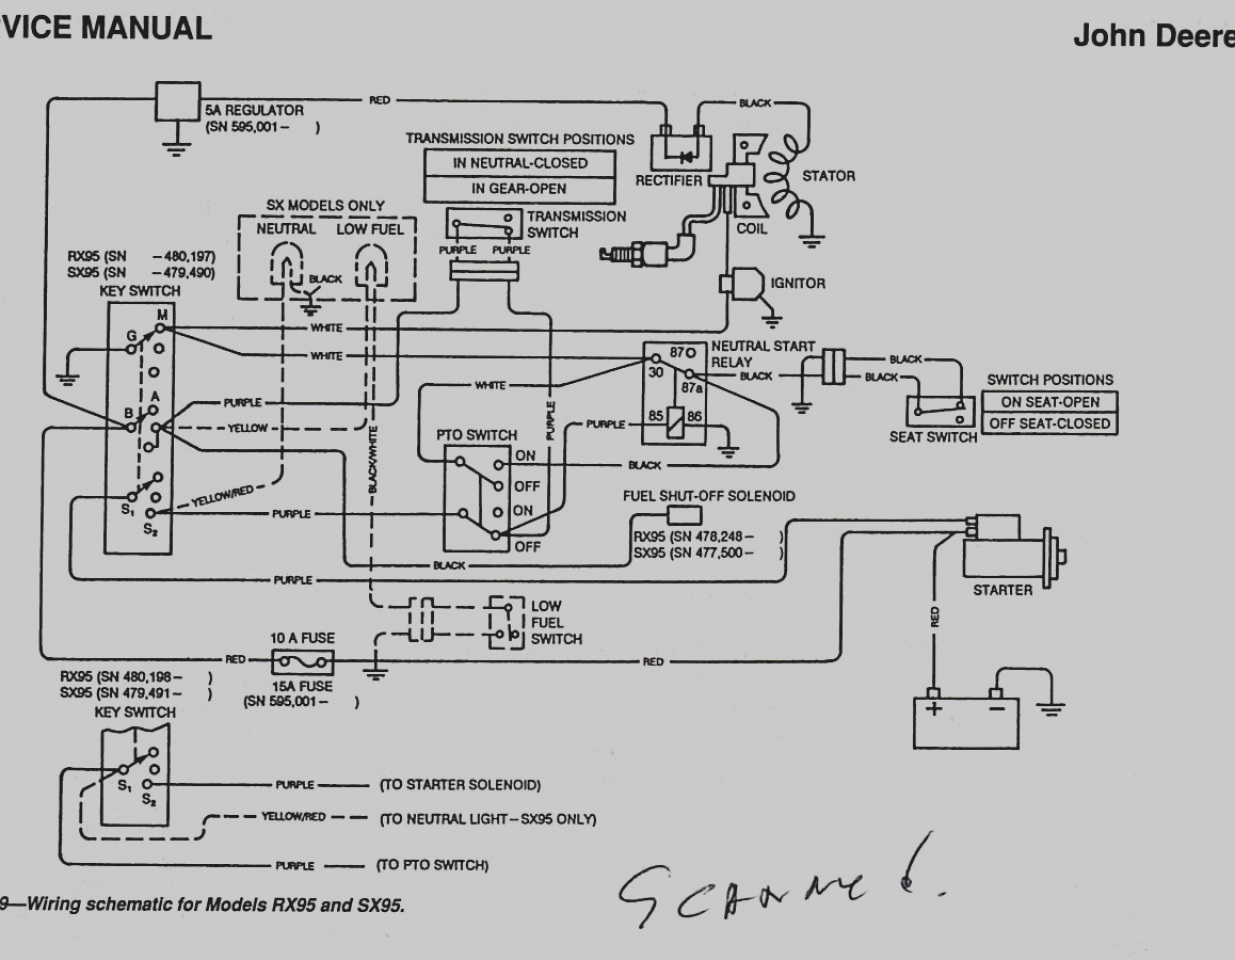 john deere l110 wiring diagram - 27 collection john deere sabre wiring  diagram stunning for image